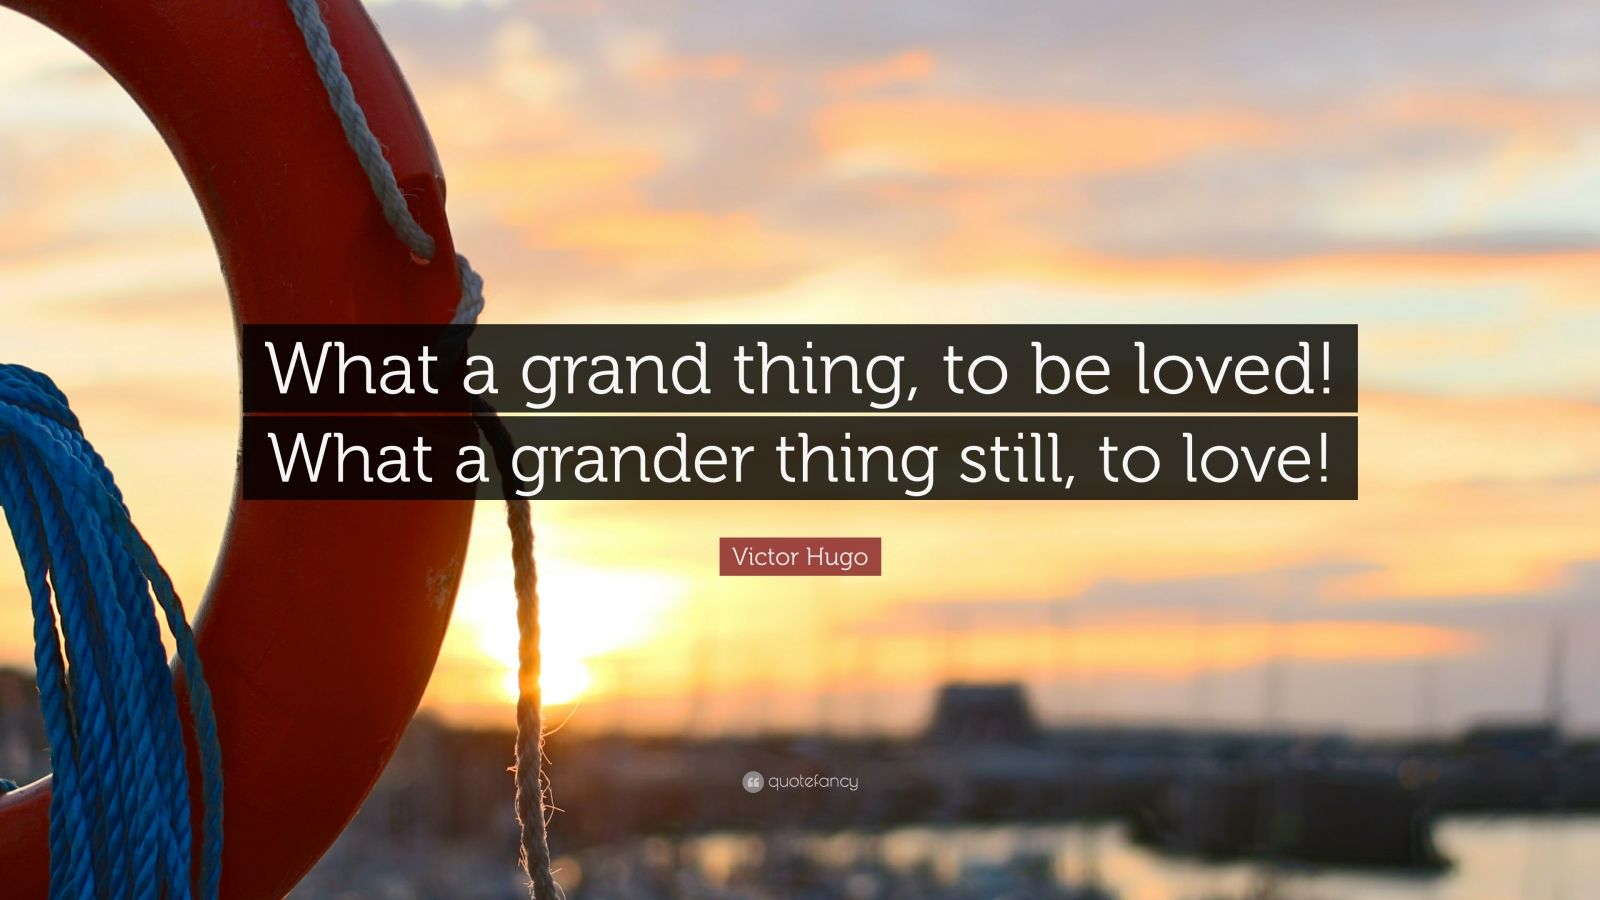 """Victor Hugo Quote: """"What a grand thing, to be loved! What a grander thing still, to love!"""""""